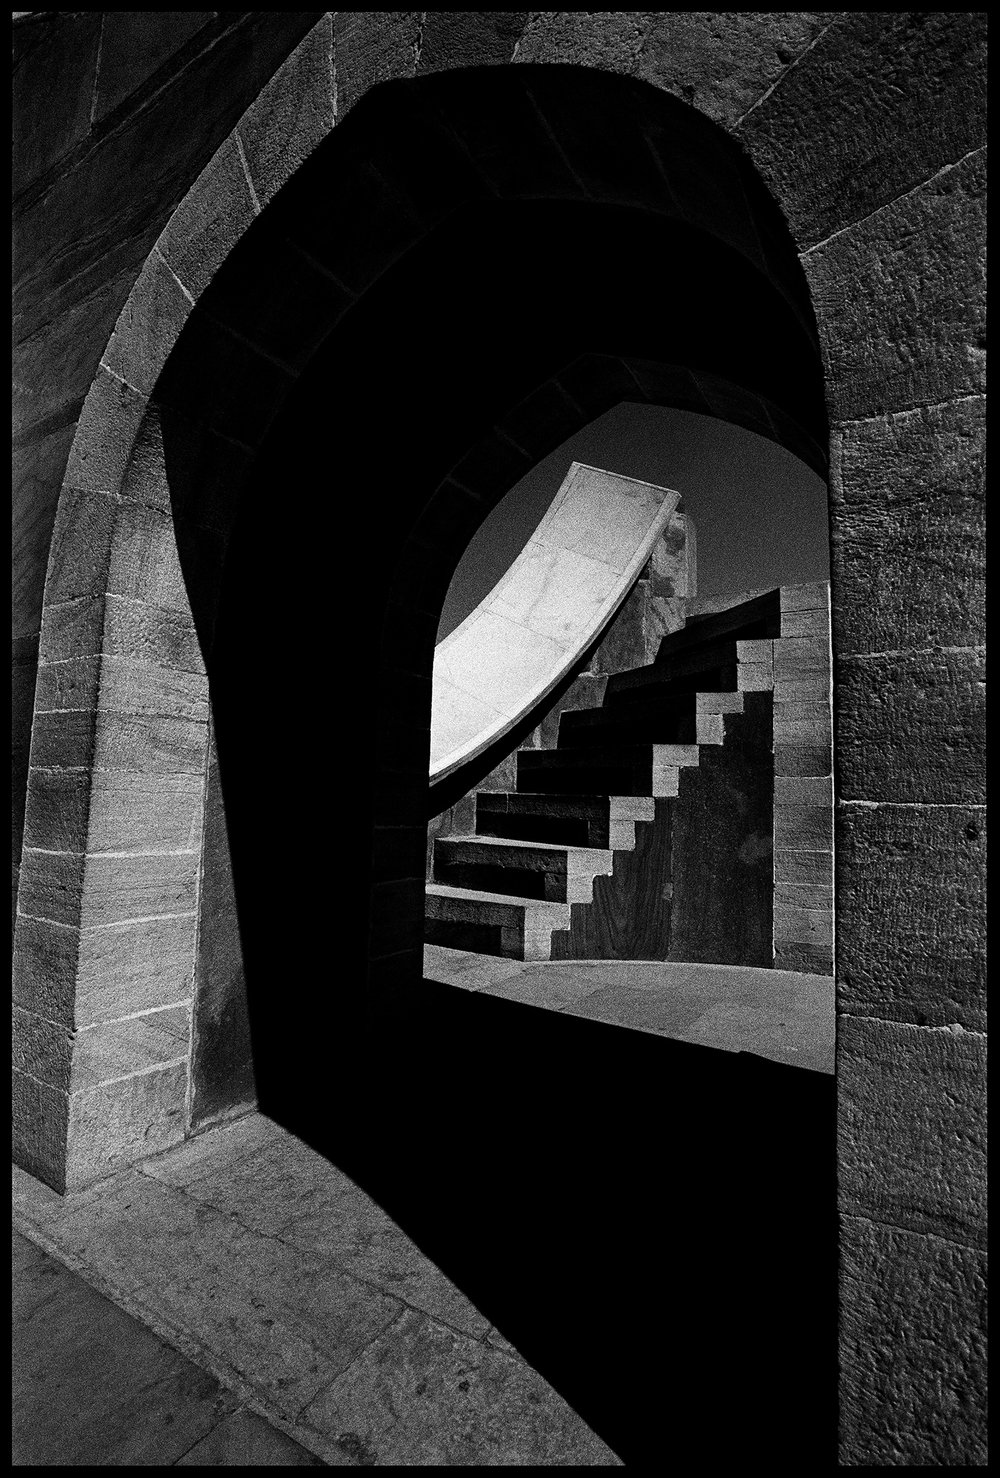 132_GALLERY_Jantar-Mantar-60_SURFACEMAG-SIMON-CHAPUT-PHOTOGRAPHY.jpg